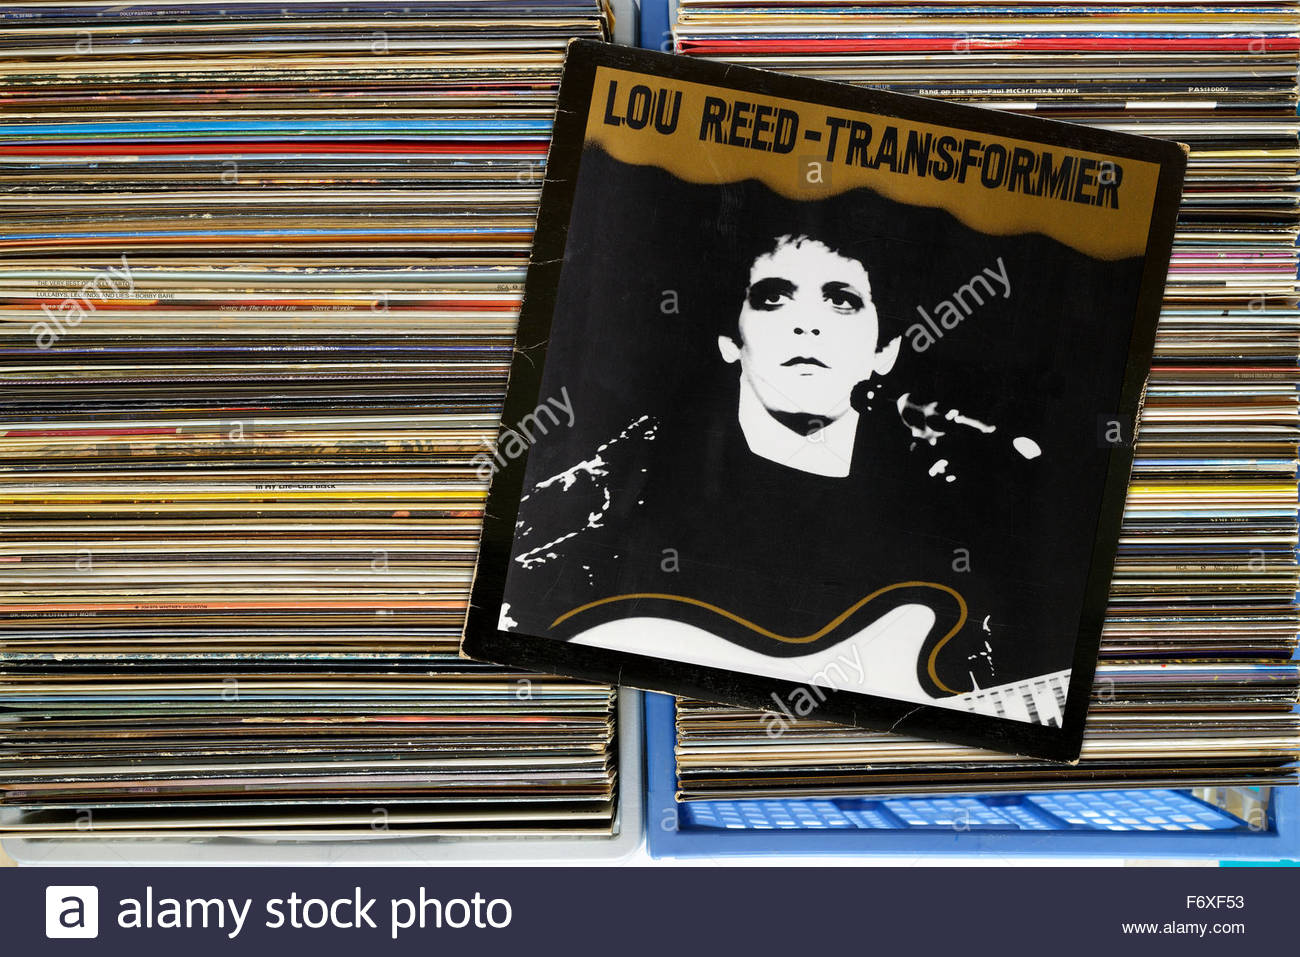 Lou Reed 1972 Album Transformer, albums in a box of second